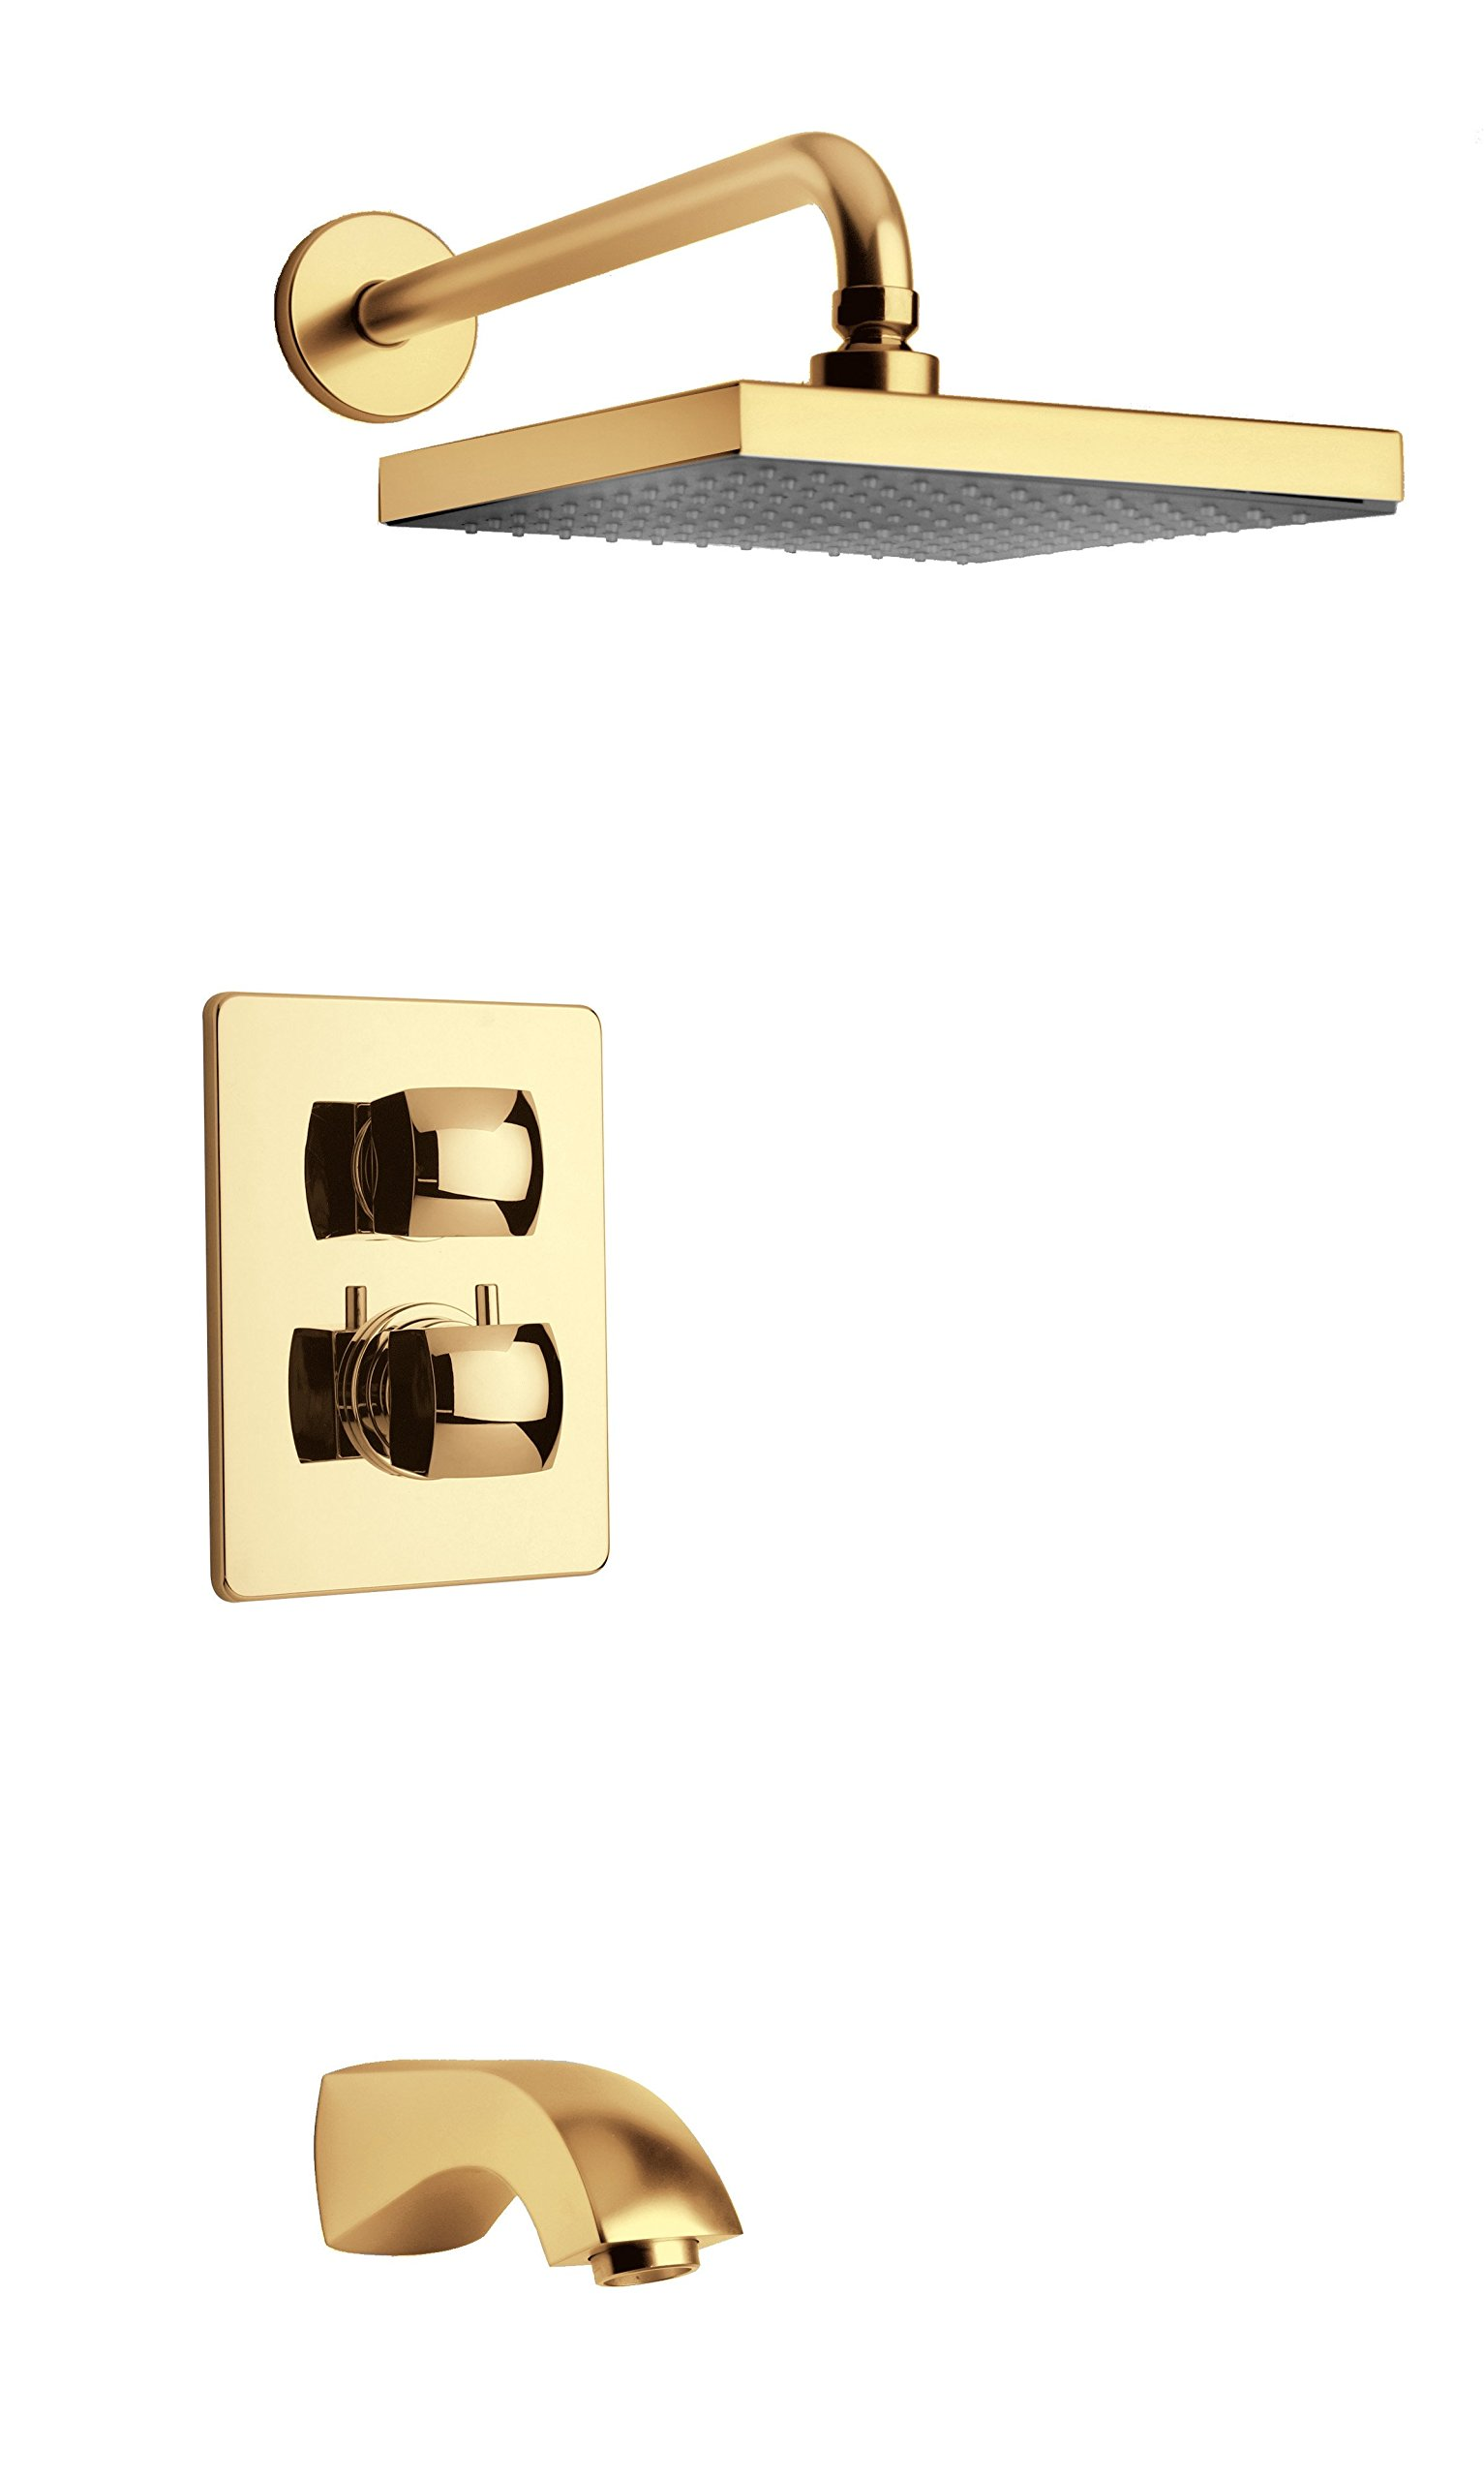 LaToscana 89OK691 Lady Thermostatic Valve with 2 Way Diverter Volume Control, Matt Gold by La Toscana